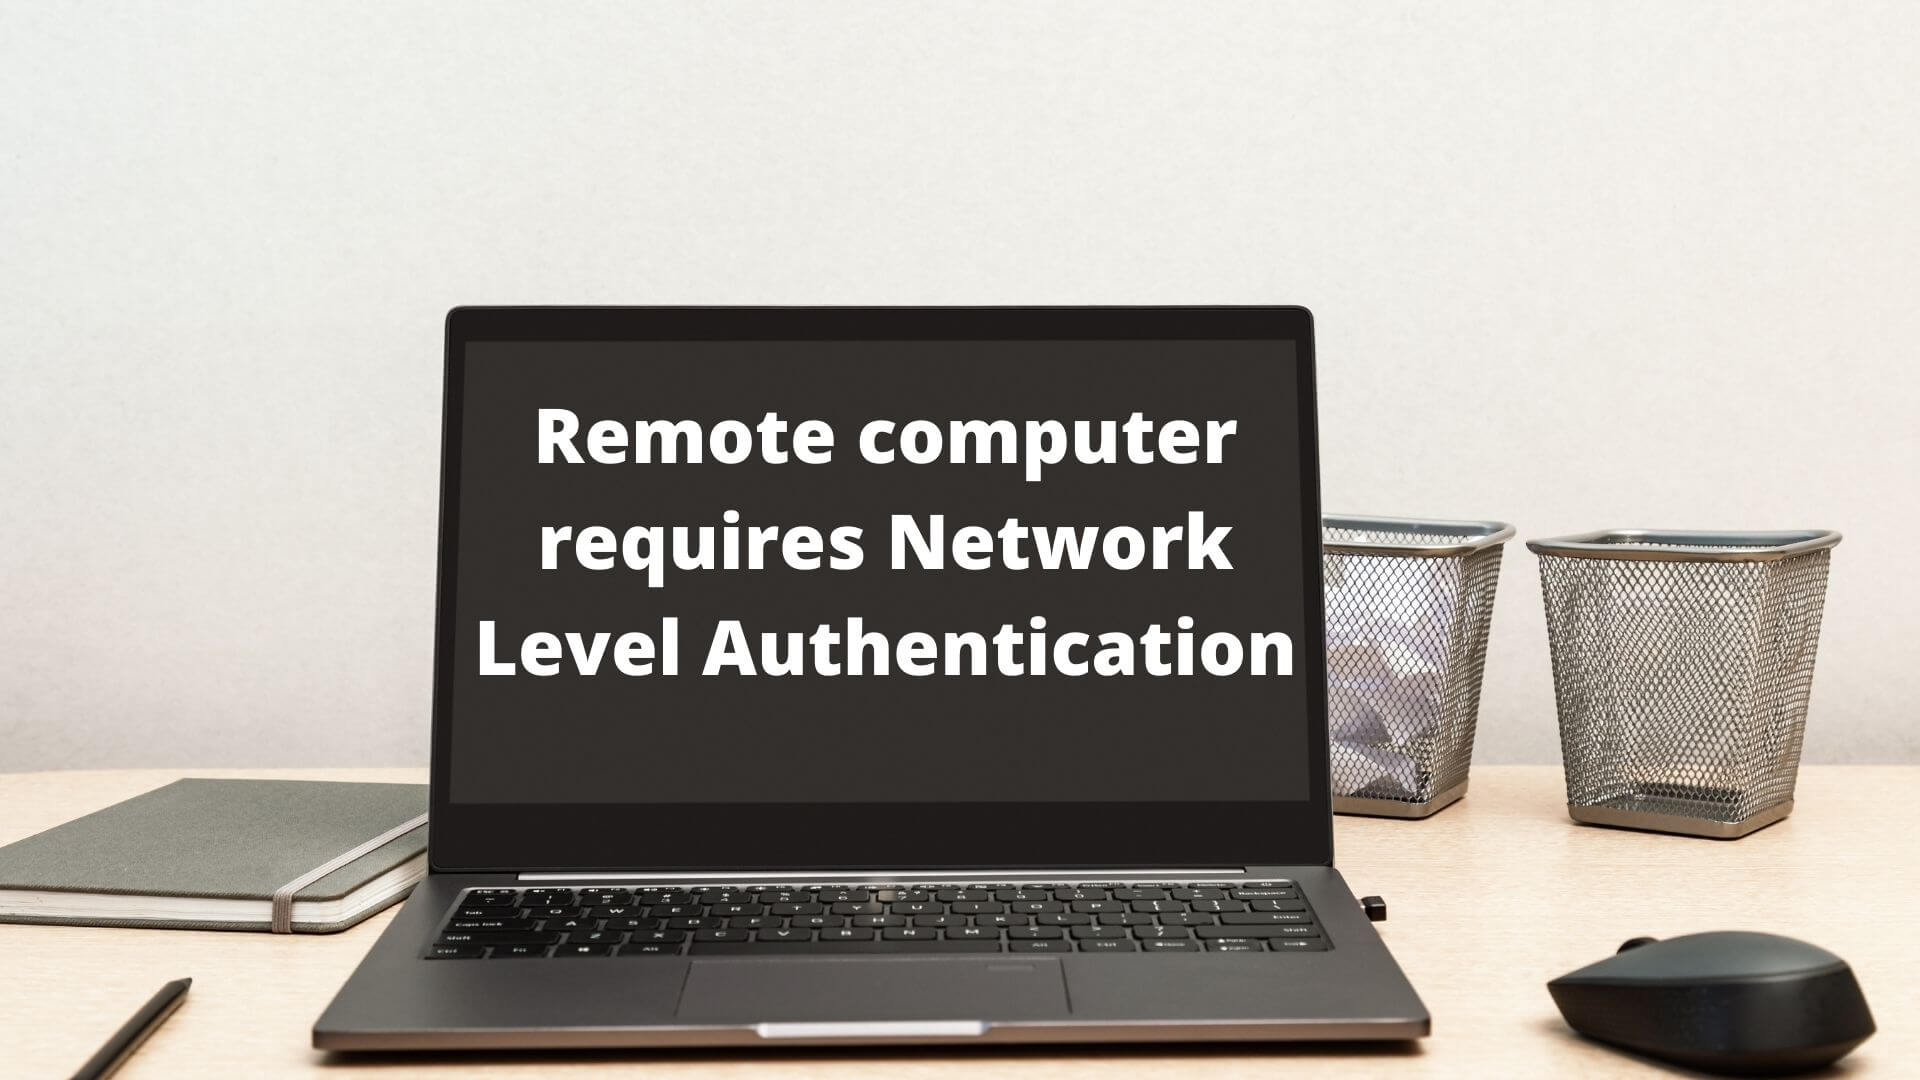 Remote computer requires Network Level Authentication